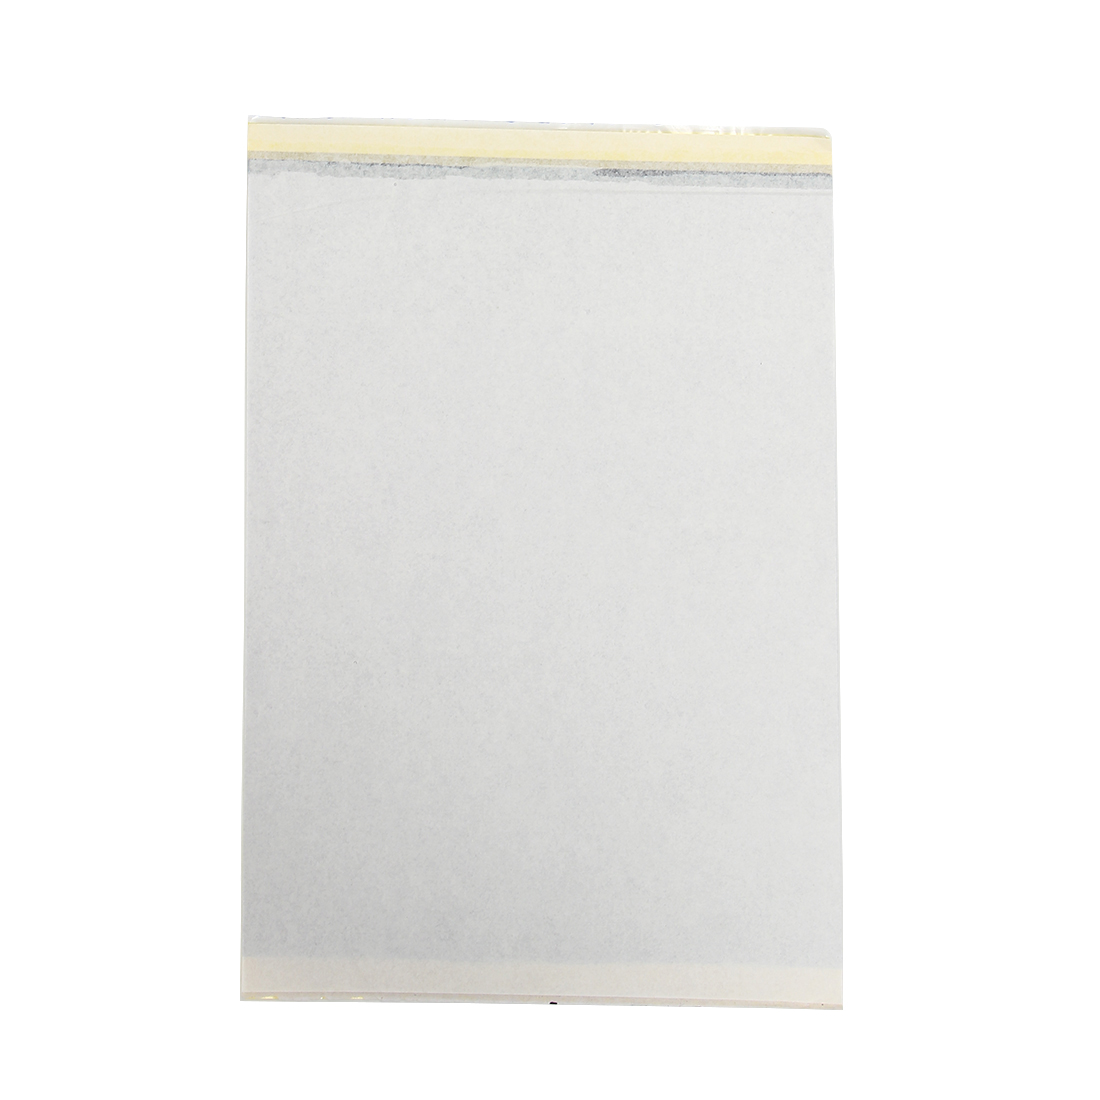 PPYY NEW -Set 100 Tattoo Thermal Stencil Transfer Copier Paper A4